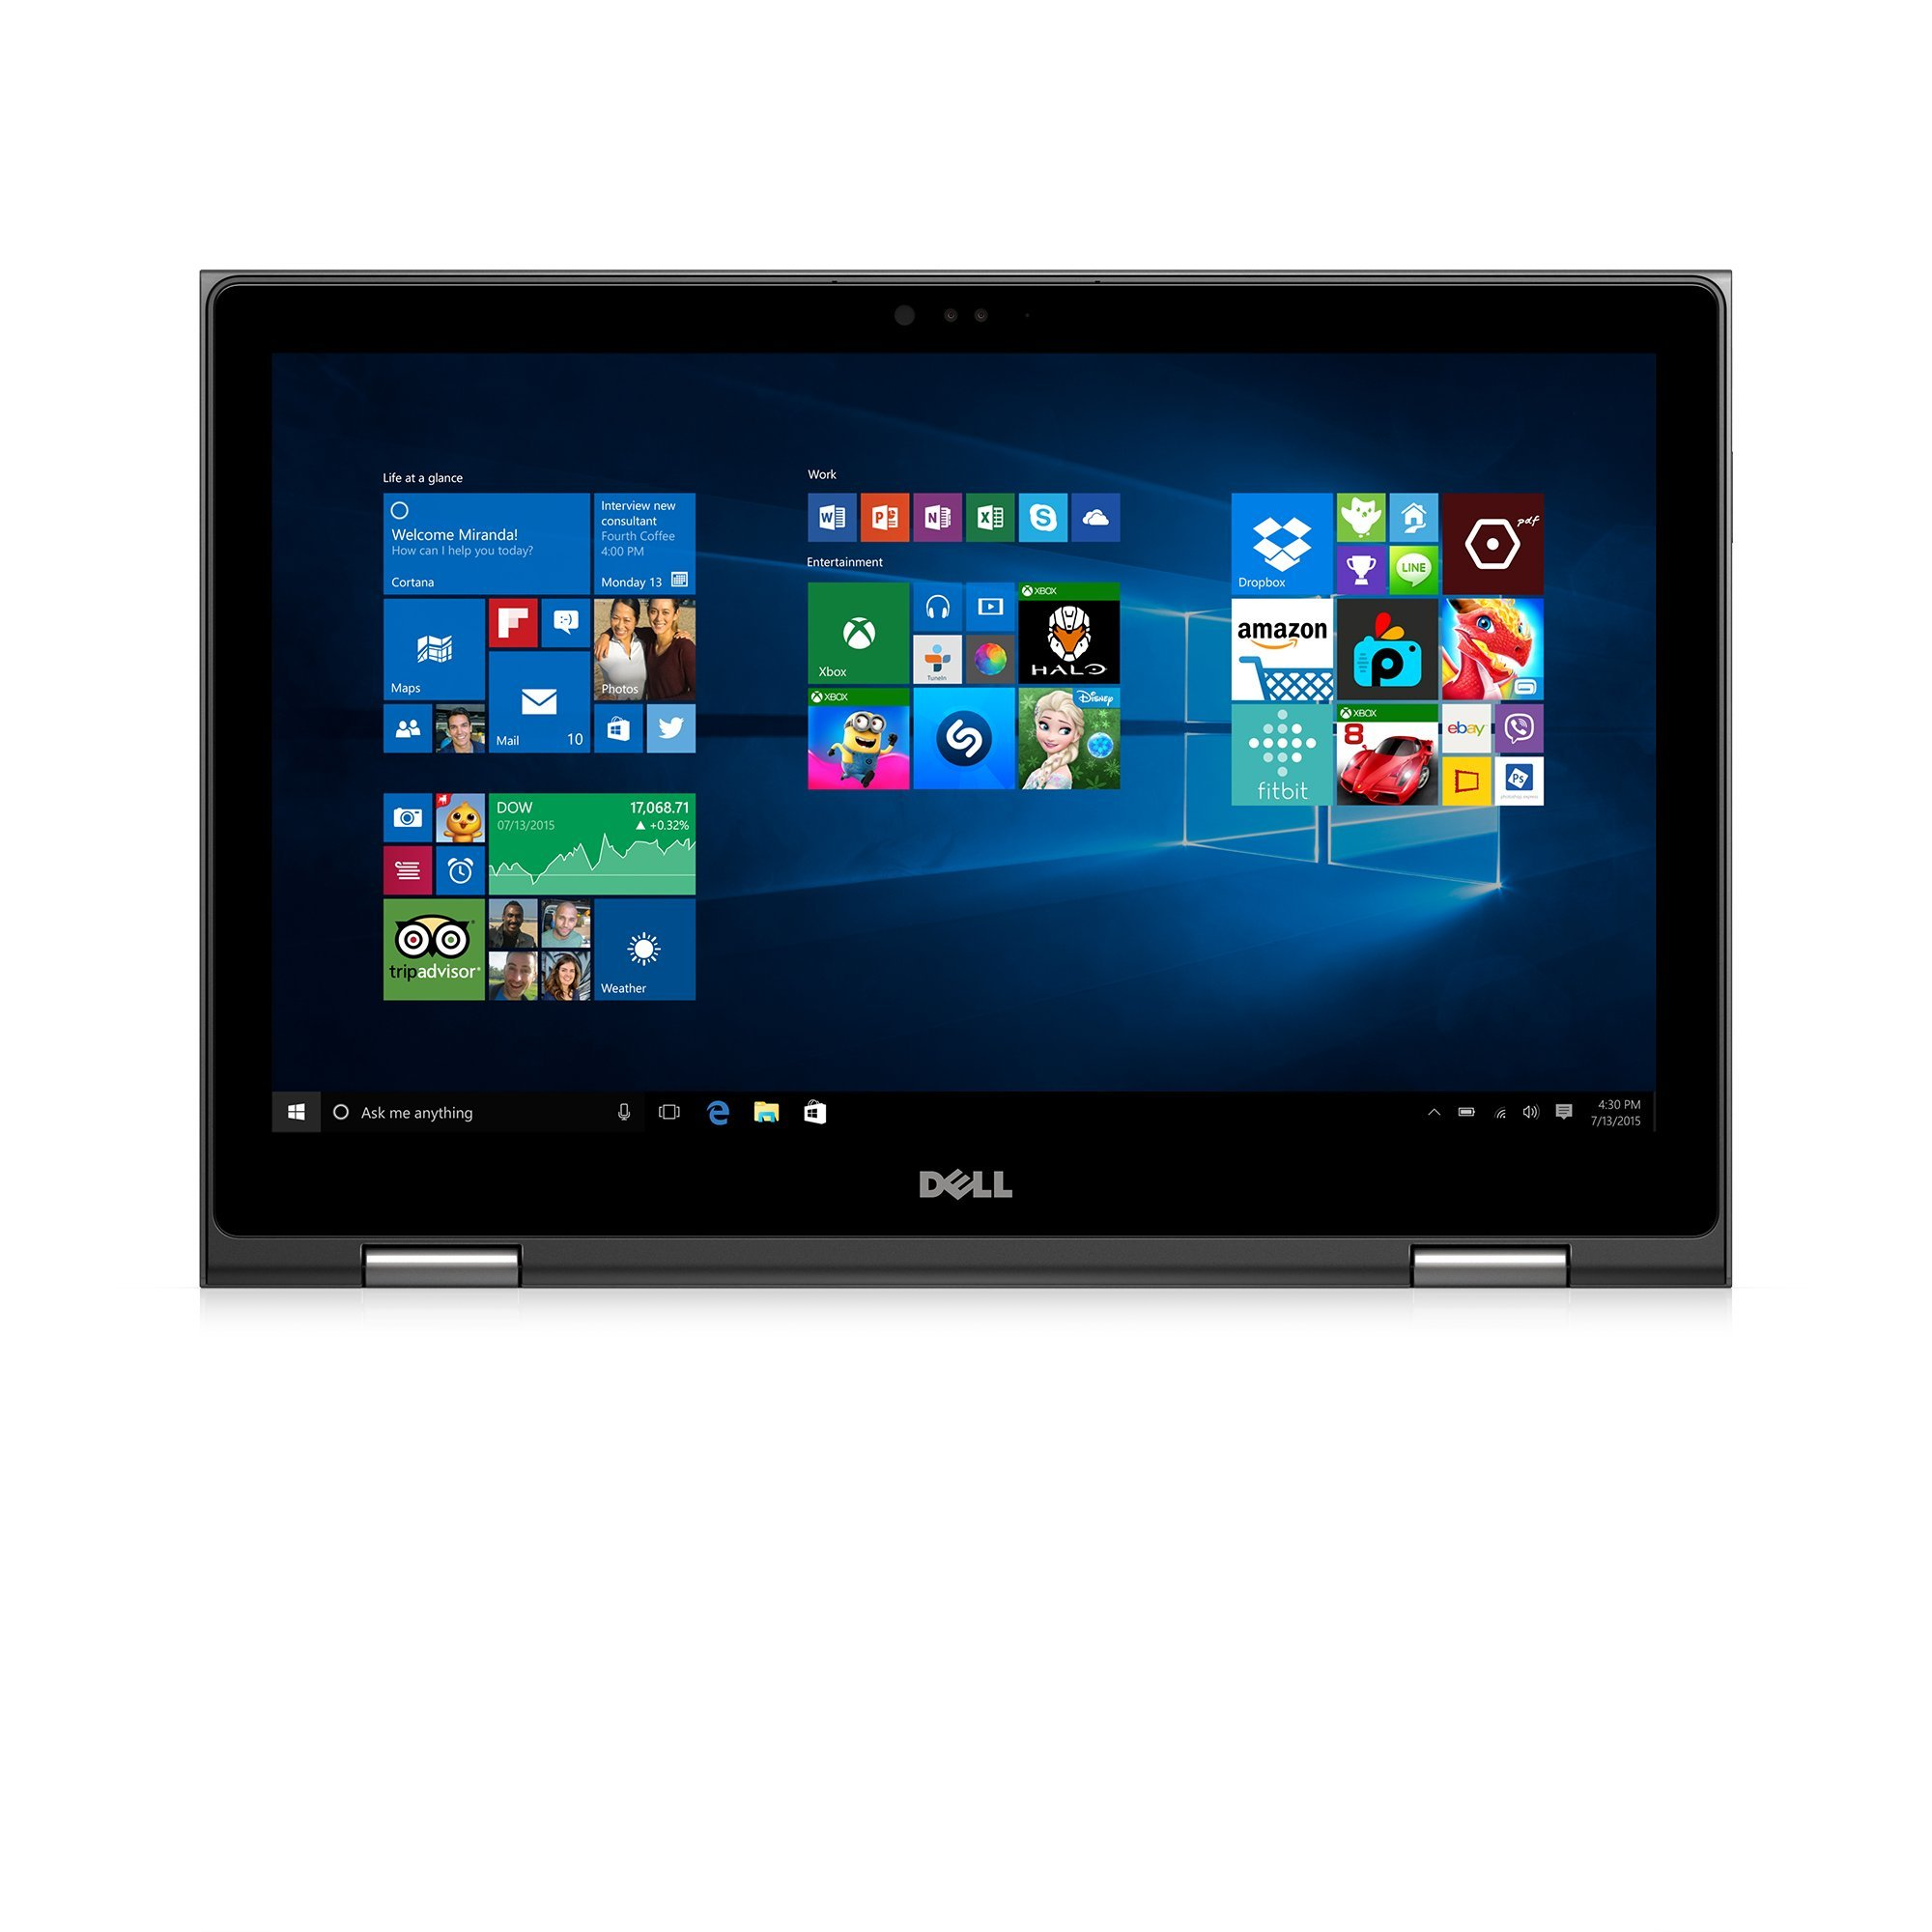 Dell i5568-7477GRY 15.6-Inches FHD 2-in-1 Laptop (Intel Core i7-6500U 2.5GHz Processor, 16 GB RAM, 256 GB SDD, Windows 10) Gray